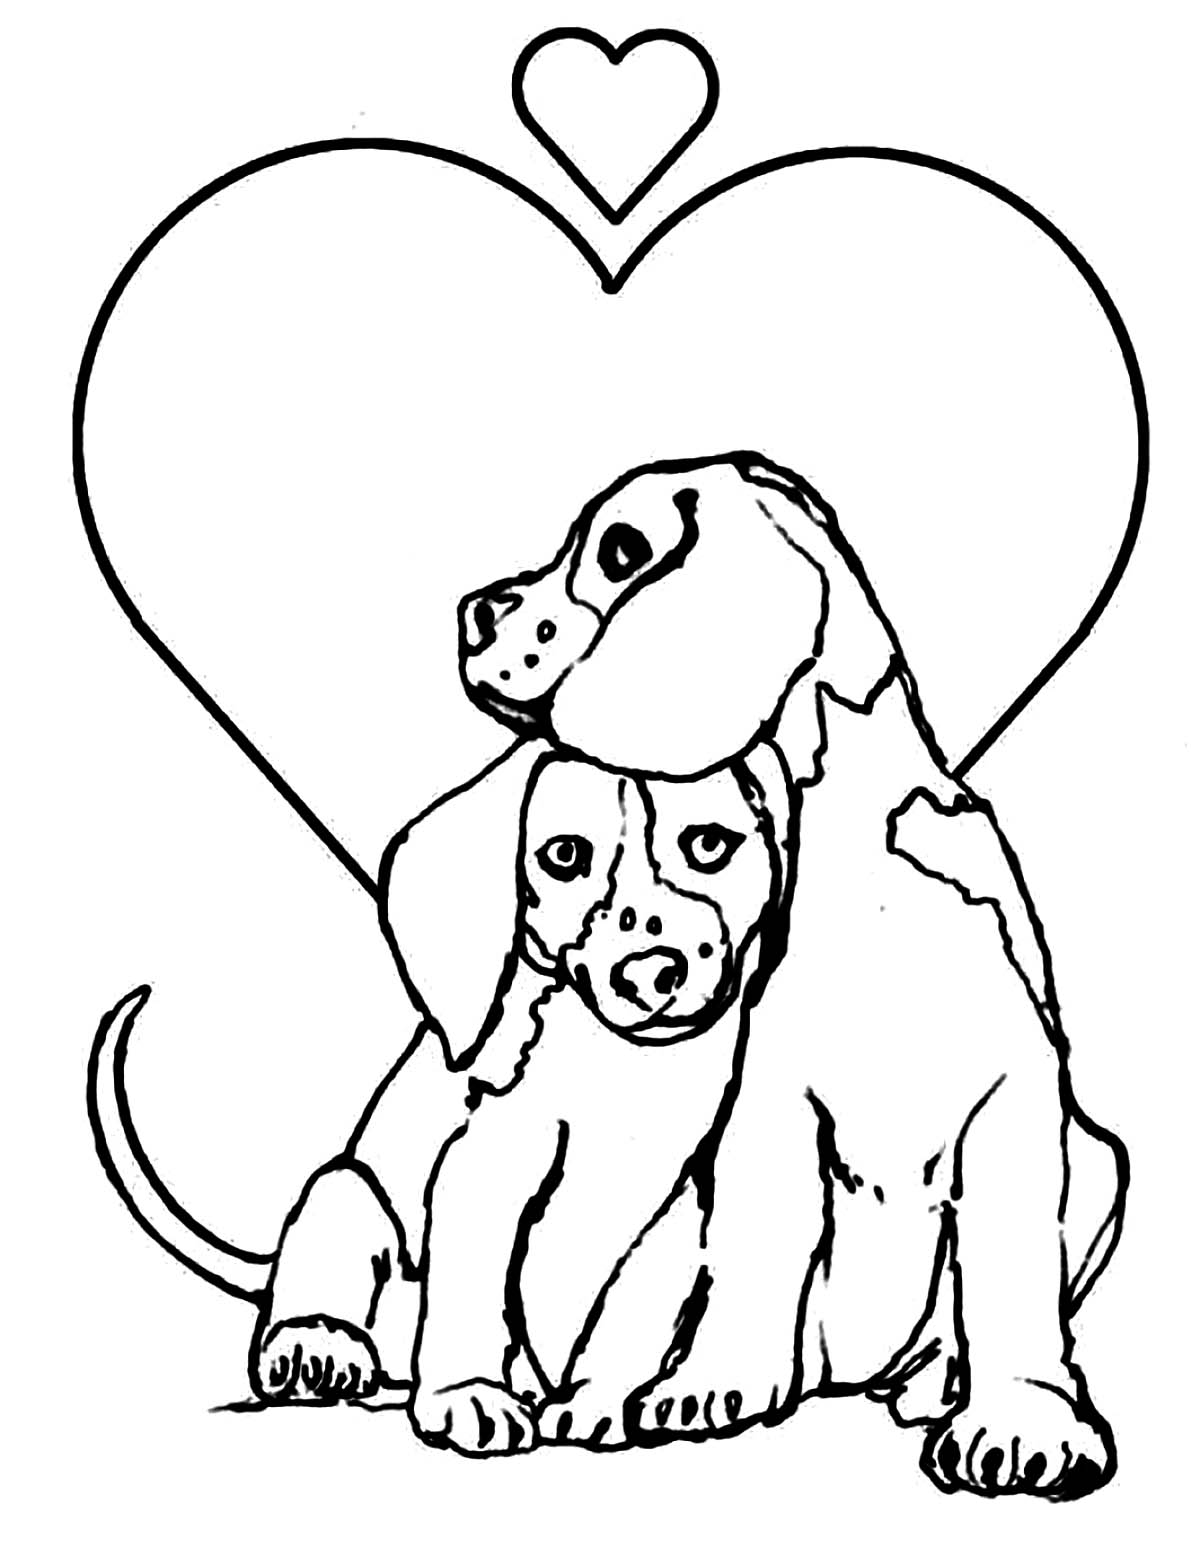 dog coloring pages to print out dog coloring pages 2018 dr odd to out coloring dog print pages